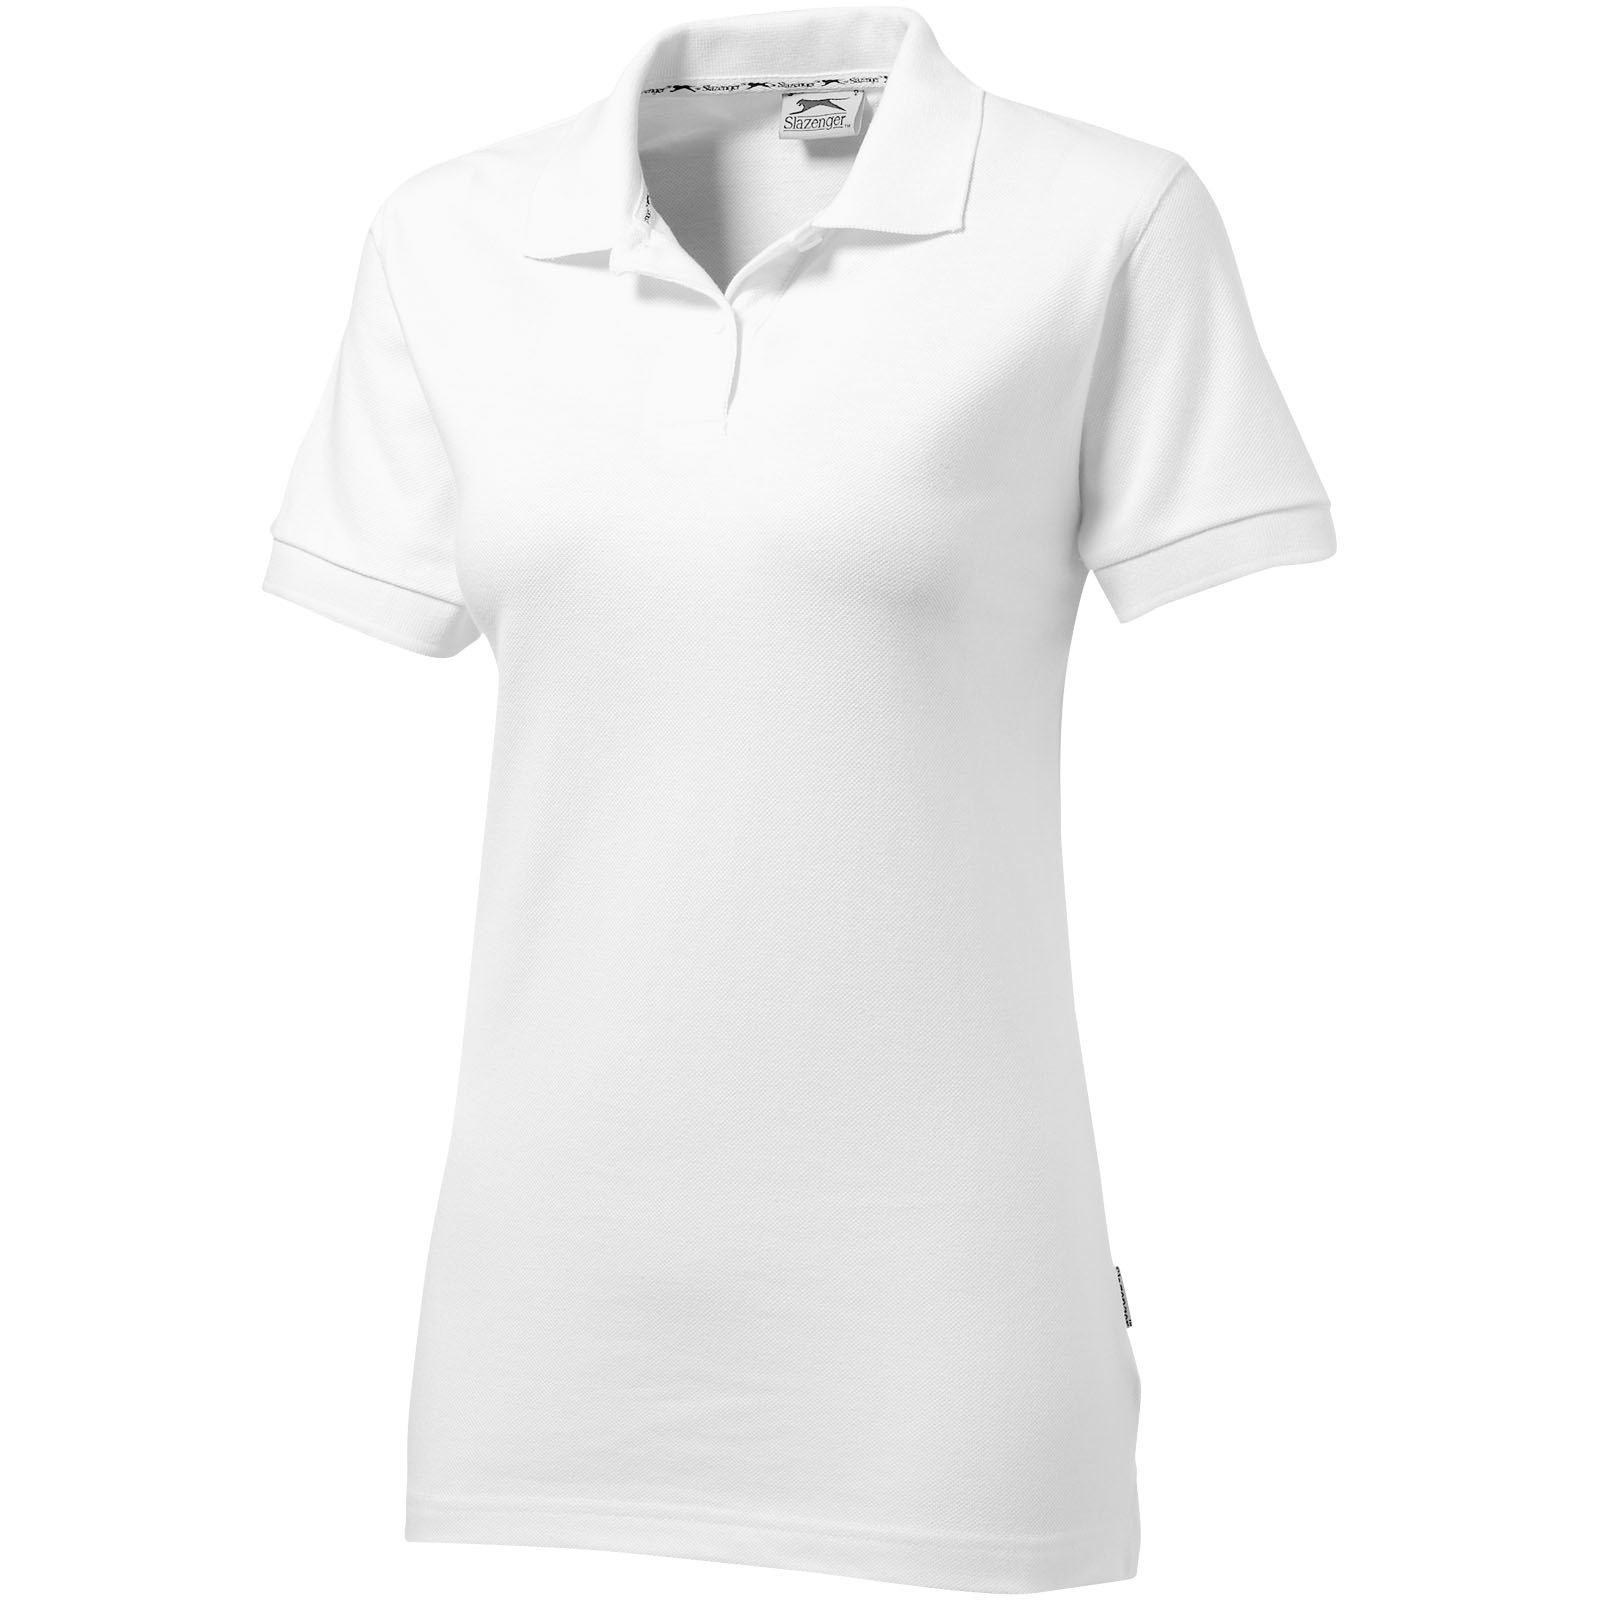 Forehand short sleeve ladies polo - White / M